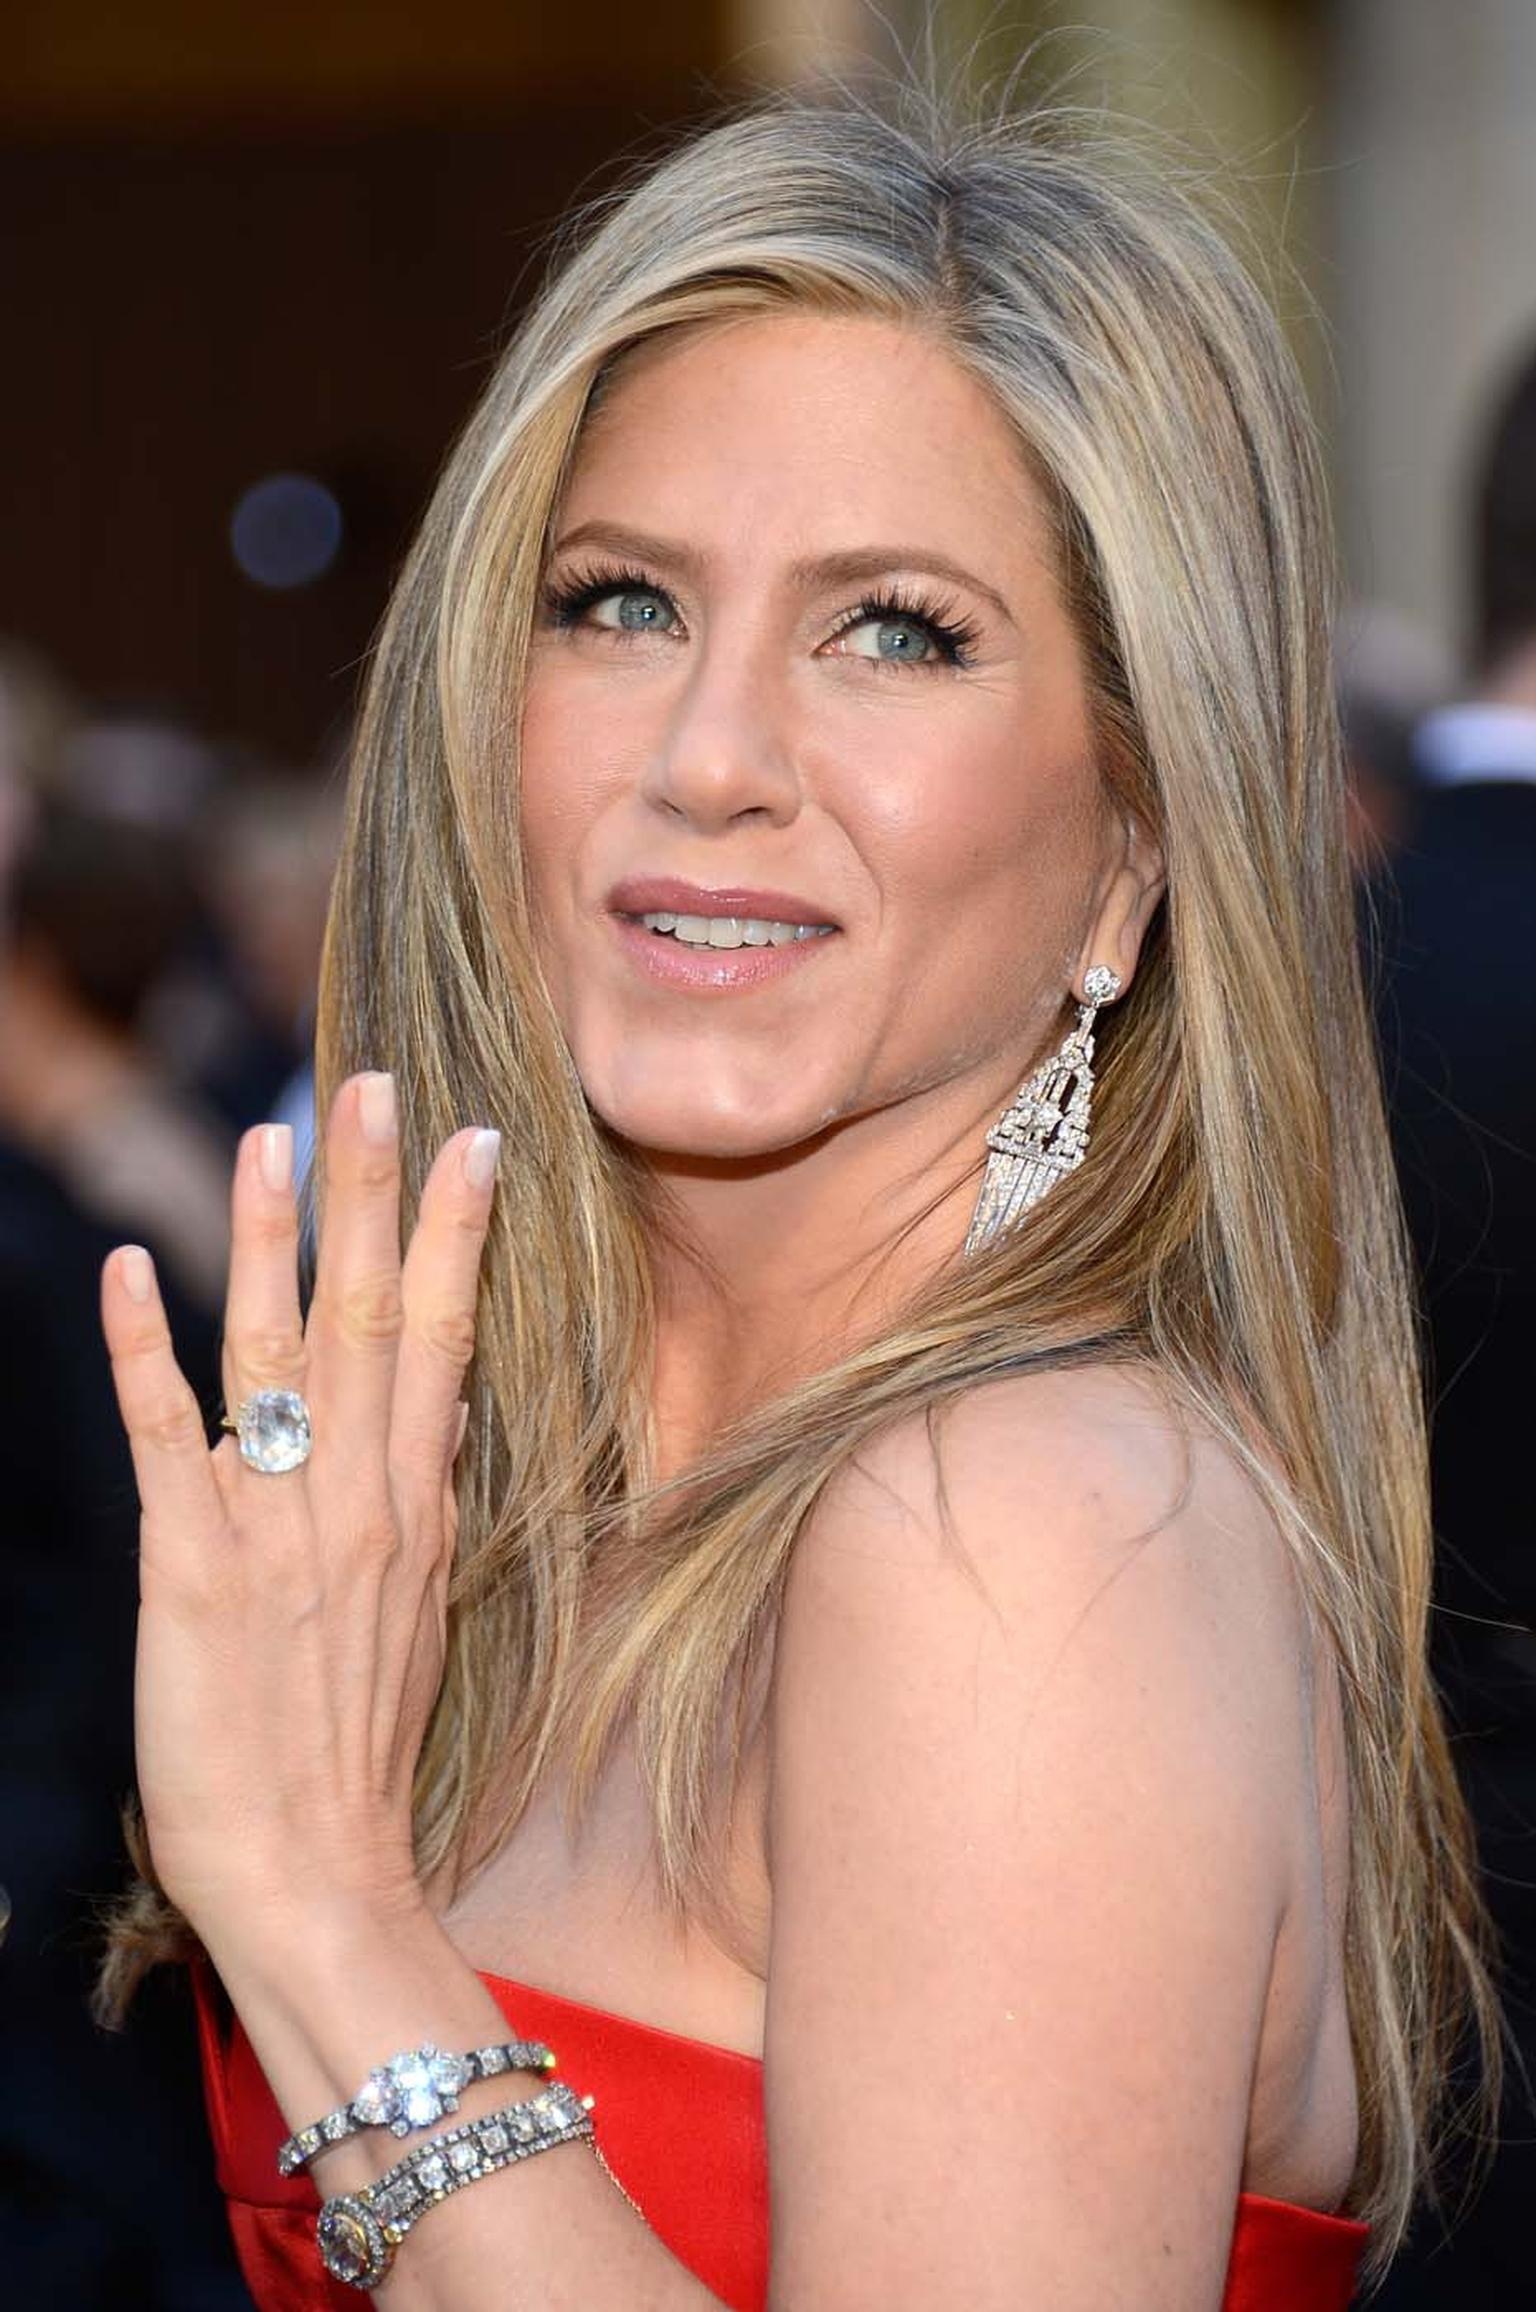 Rebecca Selva, chief creative officer and PR director for Fred Leighton, re-imagined an Art Deco diamond dress clip into dramatic earrings for Jennifer Aniston at the 2013 Oscars.